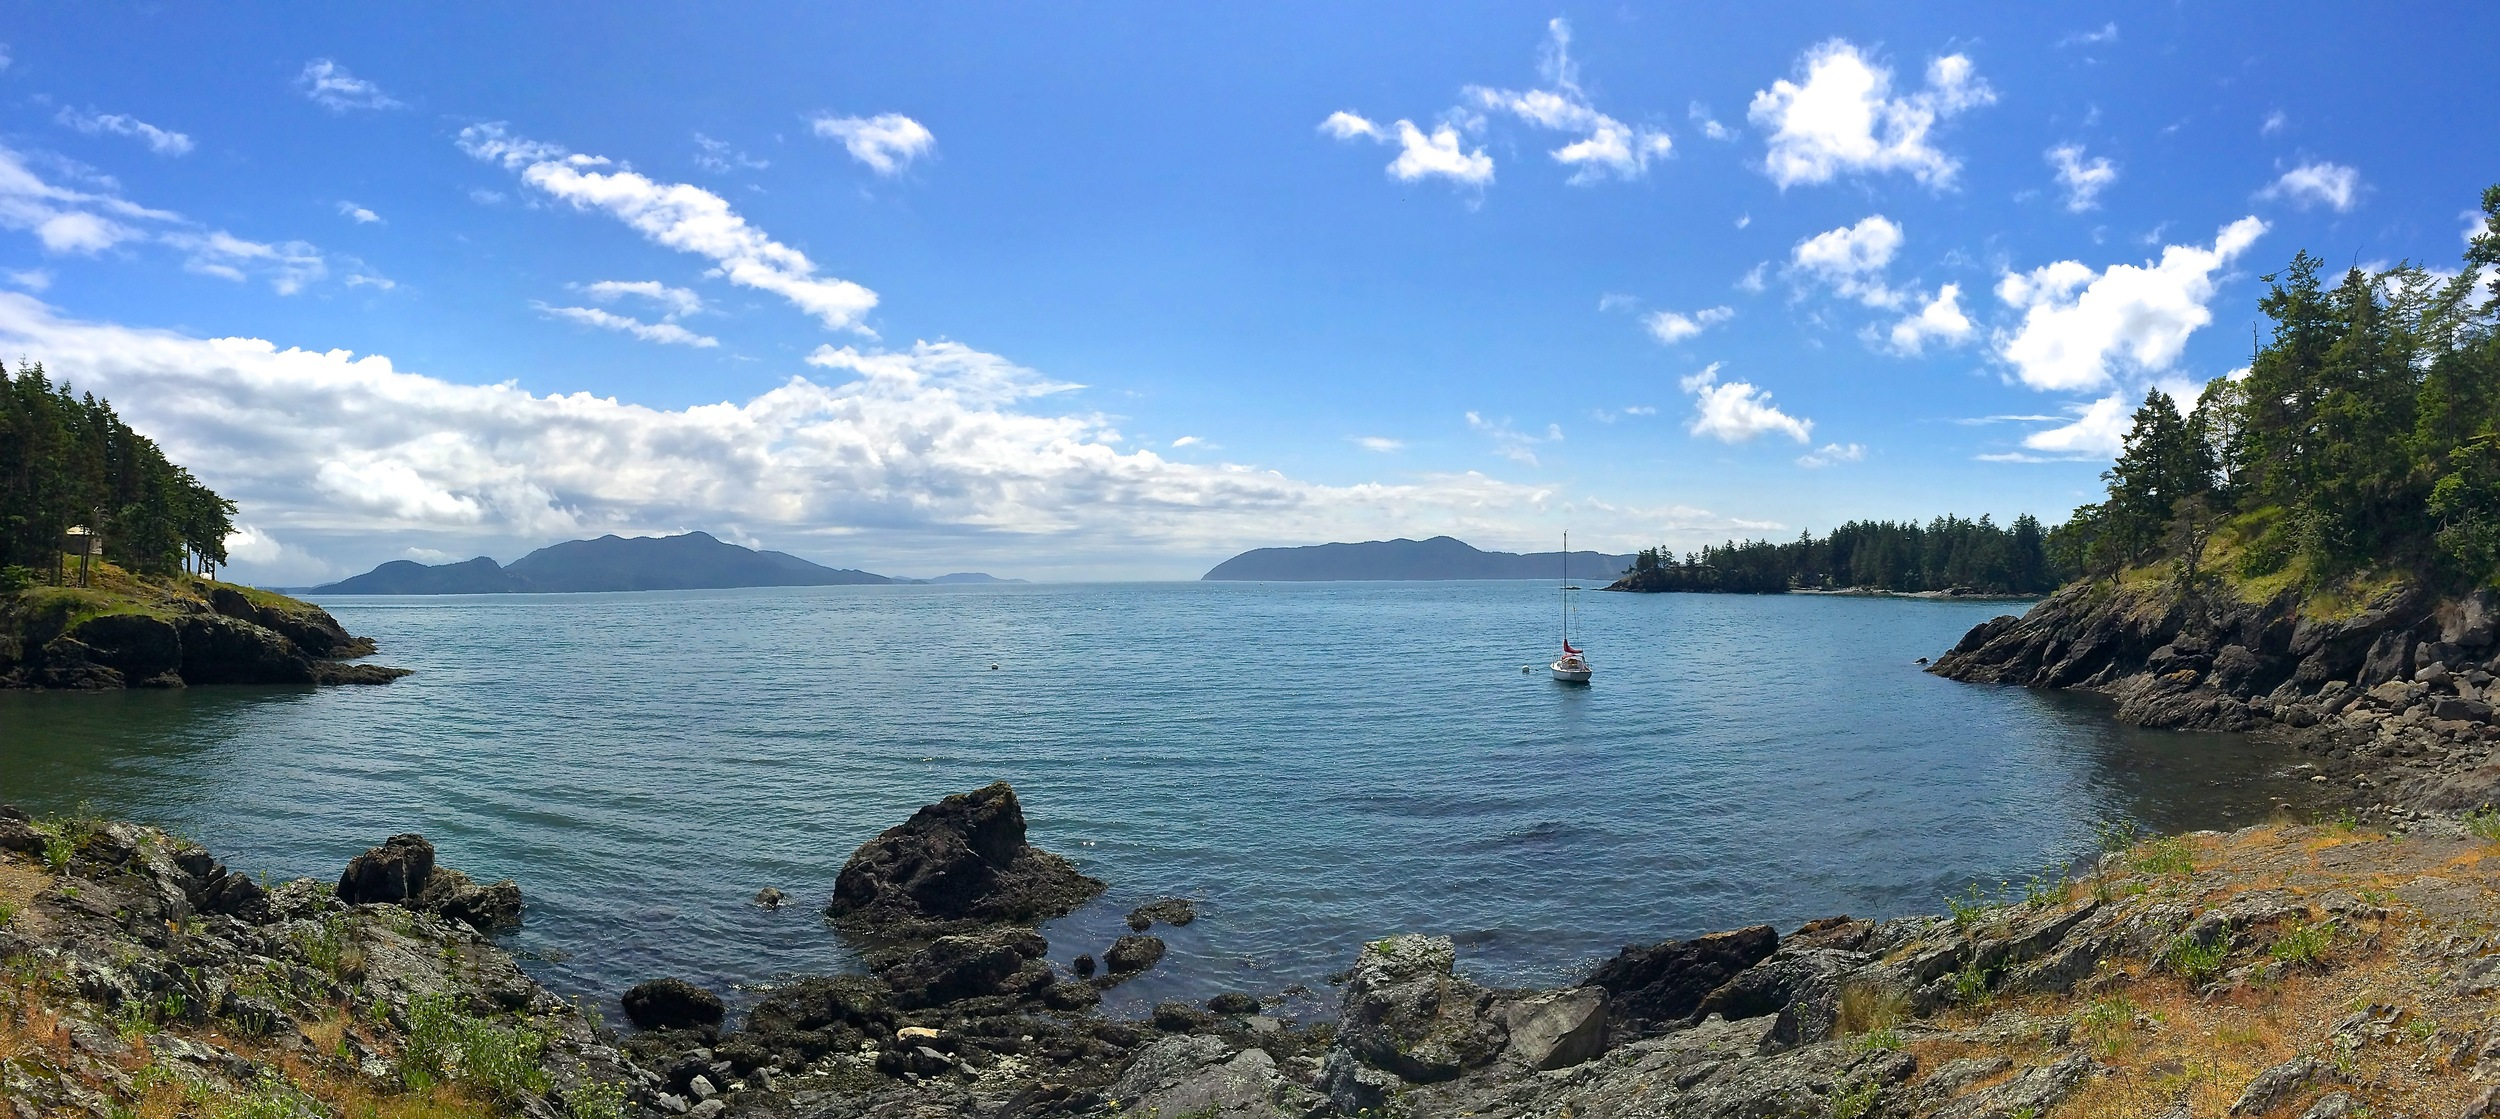 A view from Doe Bay on Orcas Island